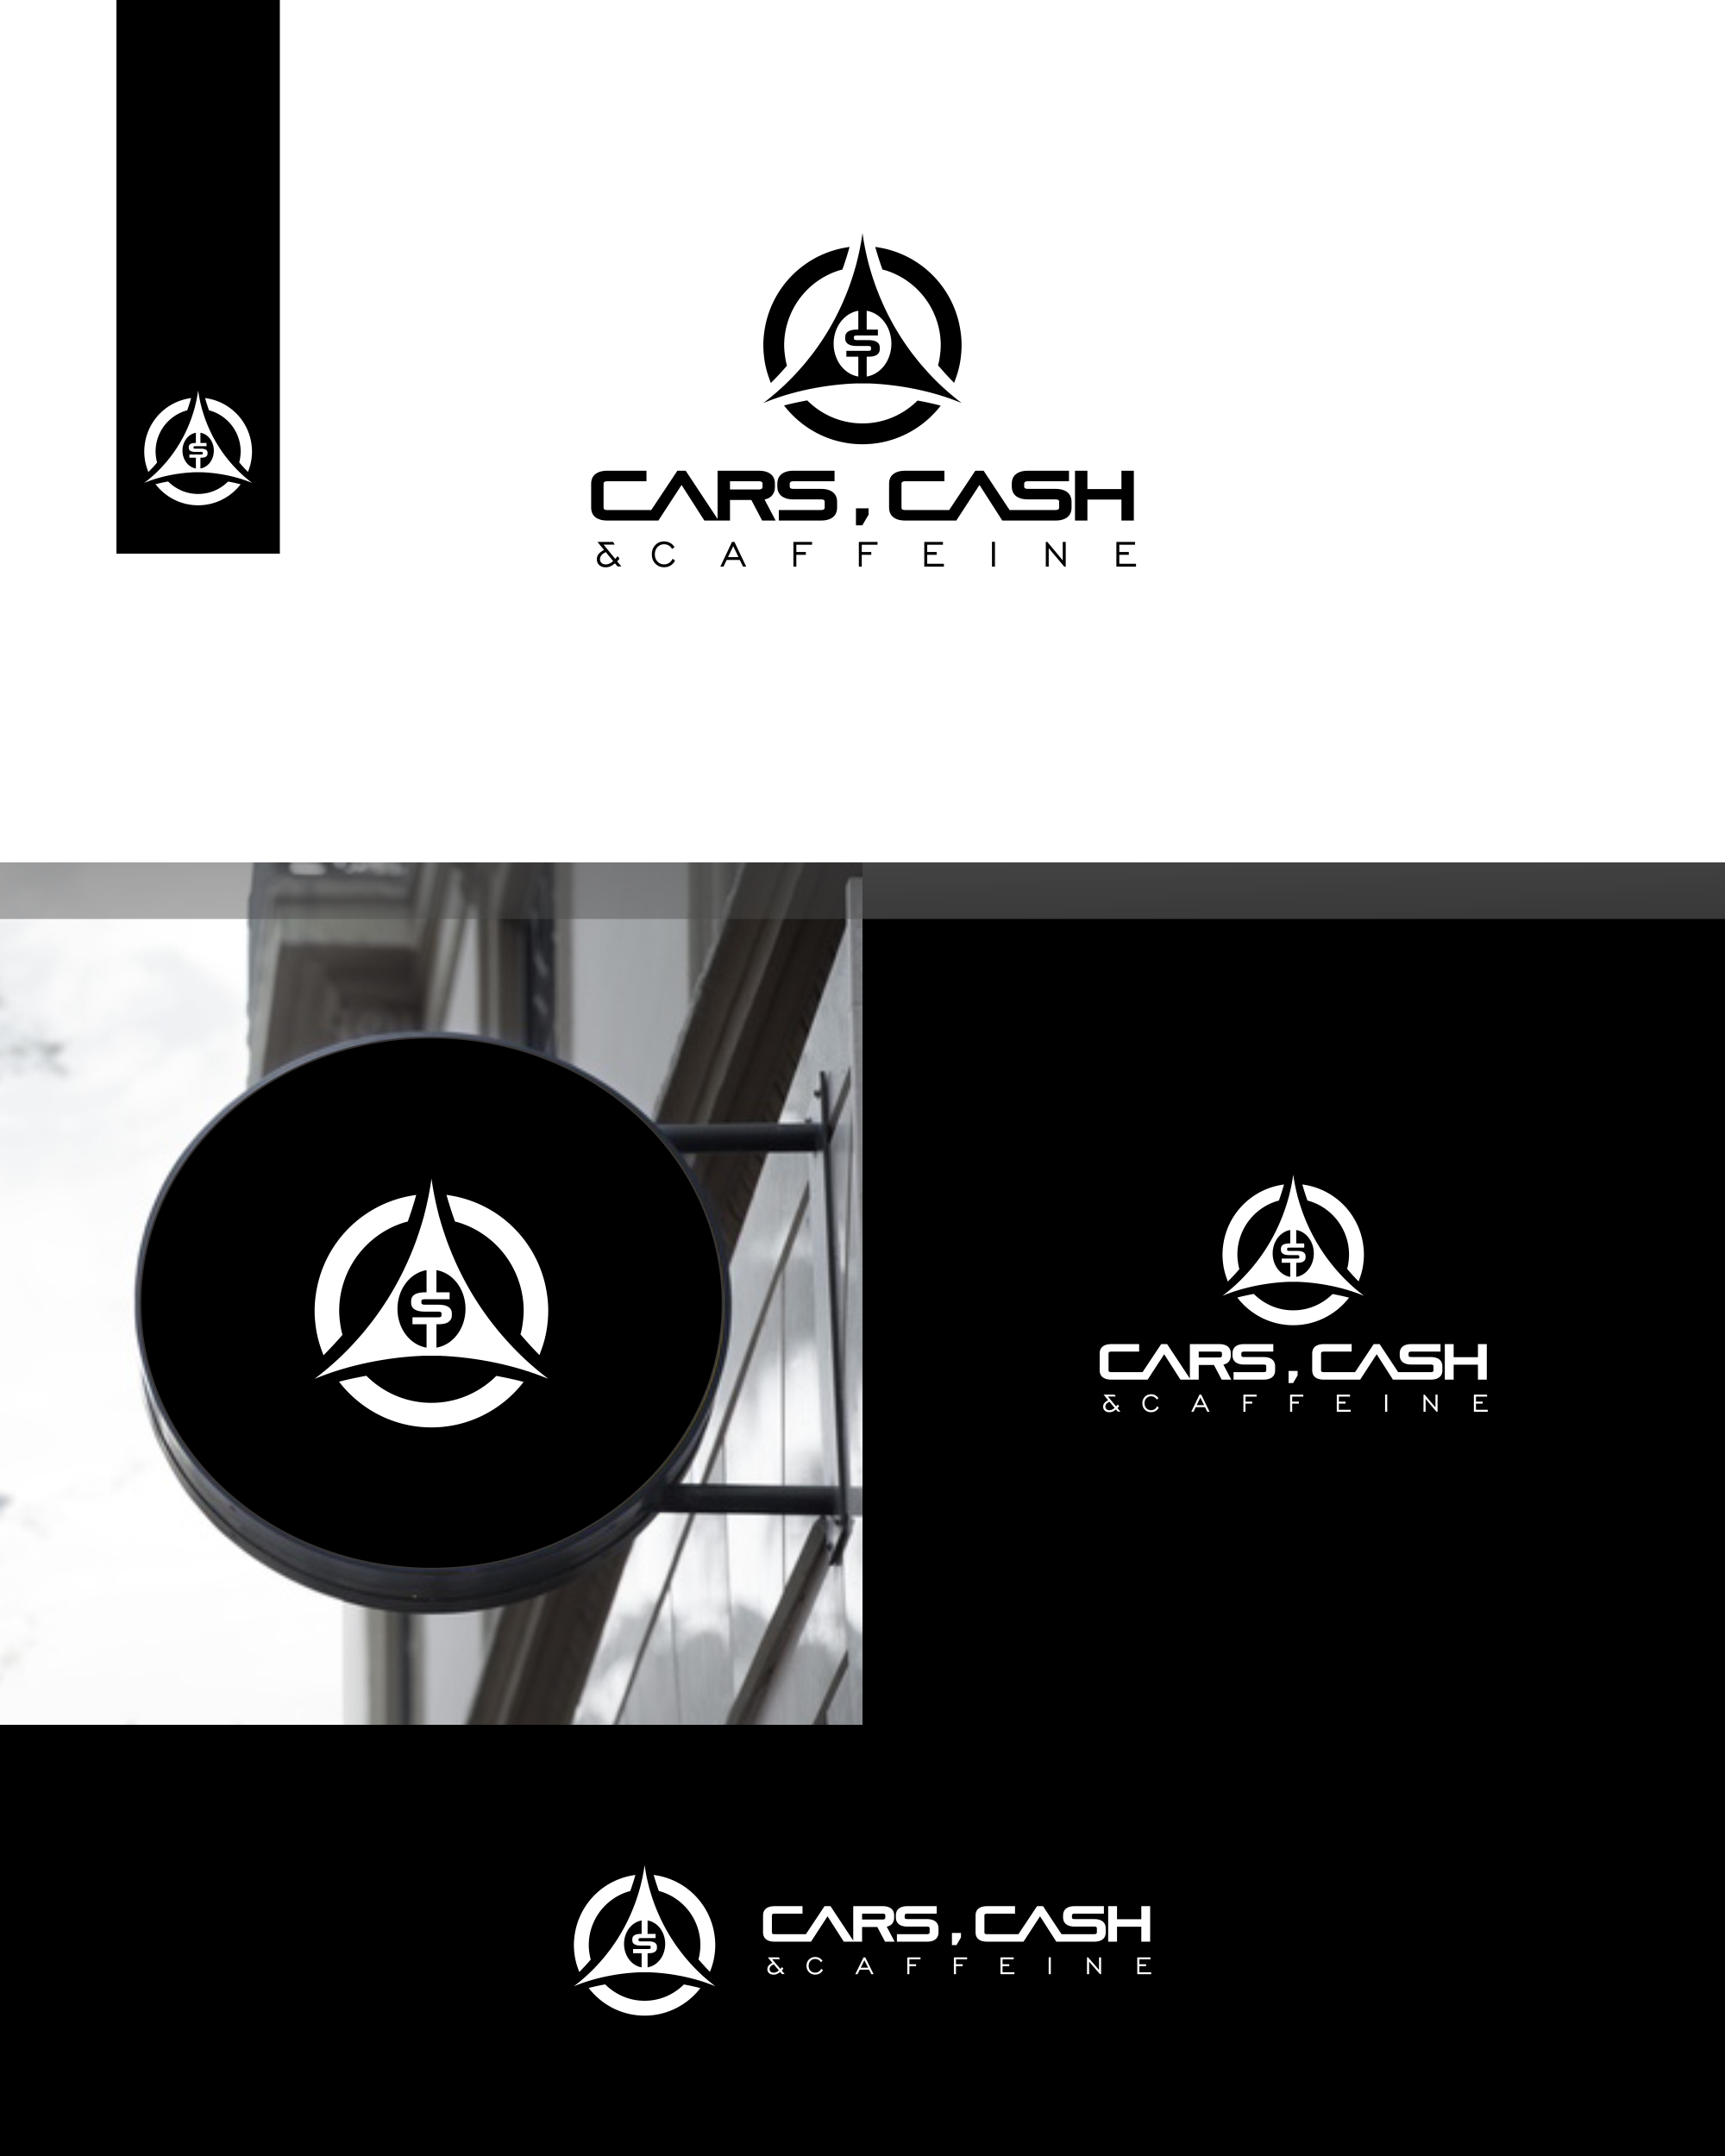 We Are Combining Entrepreneurship/Networking with Cars & We Need A Logo!